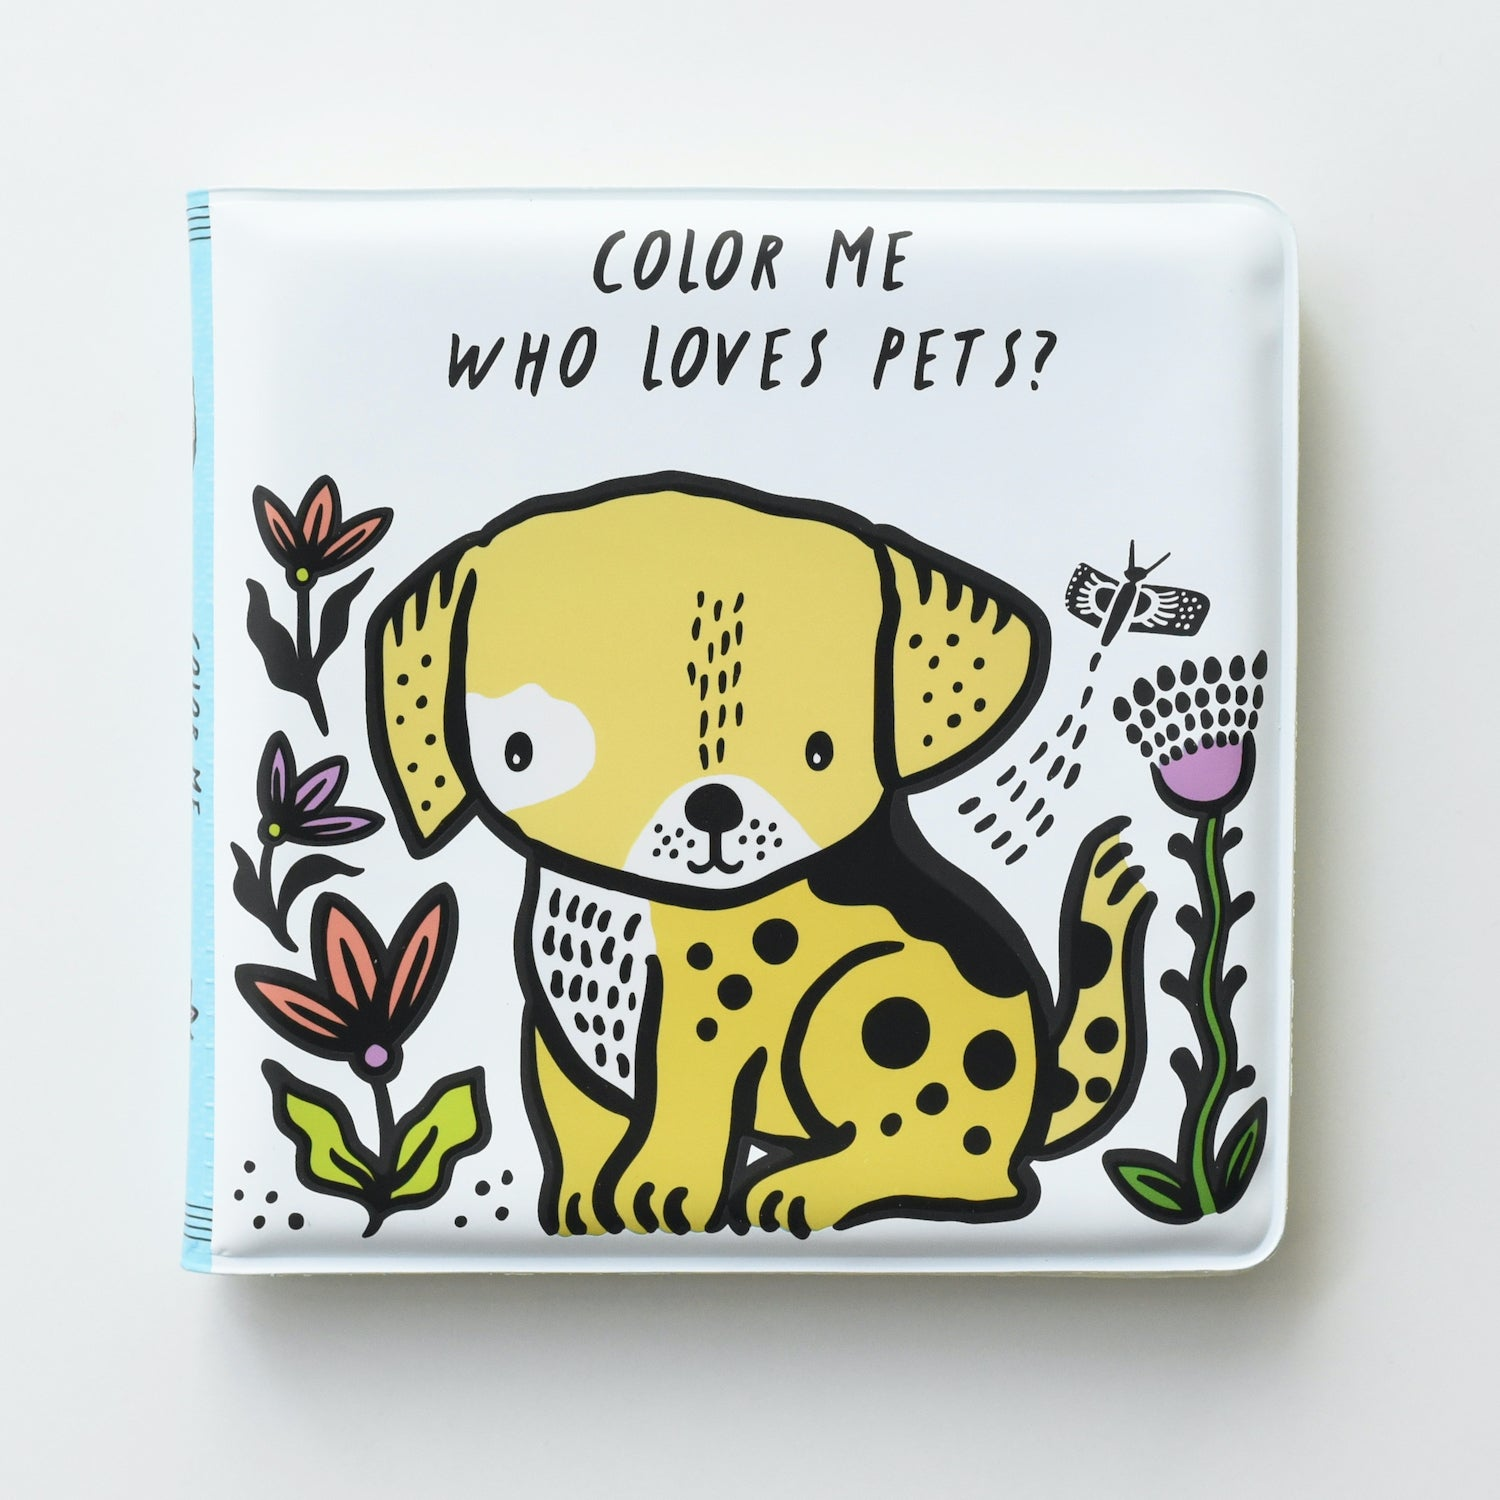 Badboekje Wee gallery - Color me pets